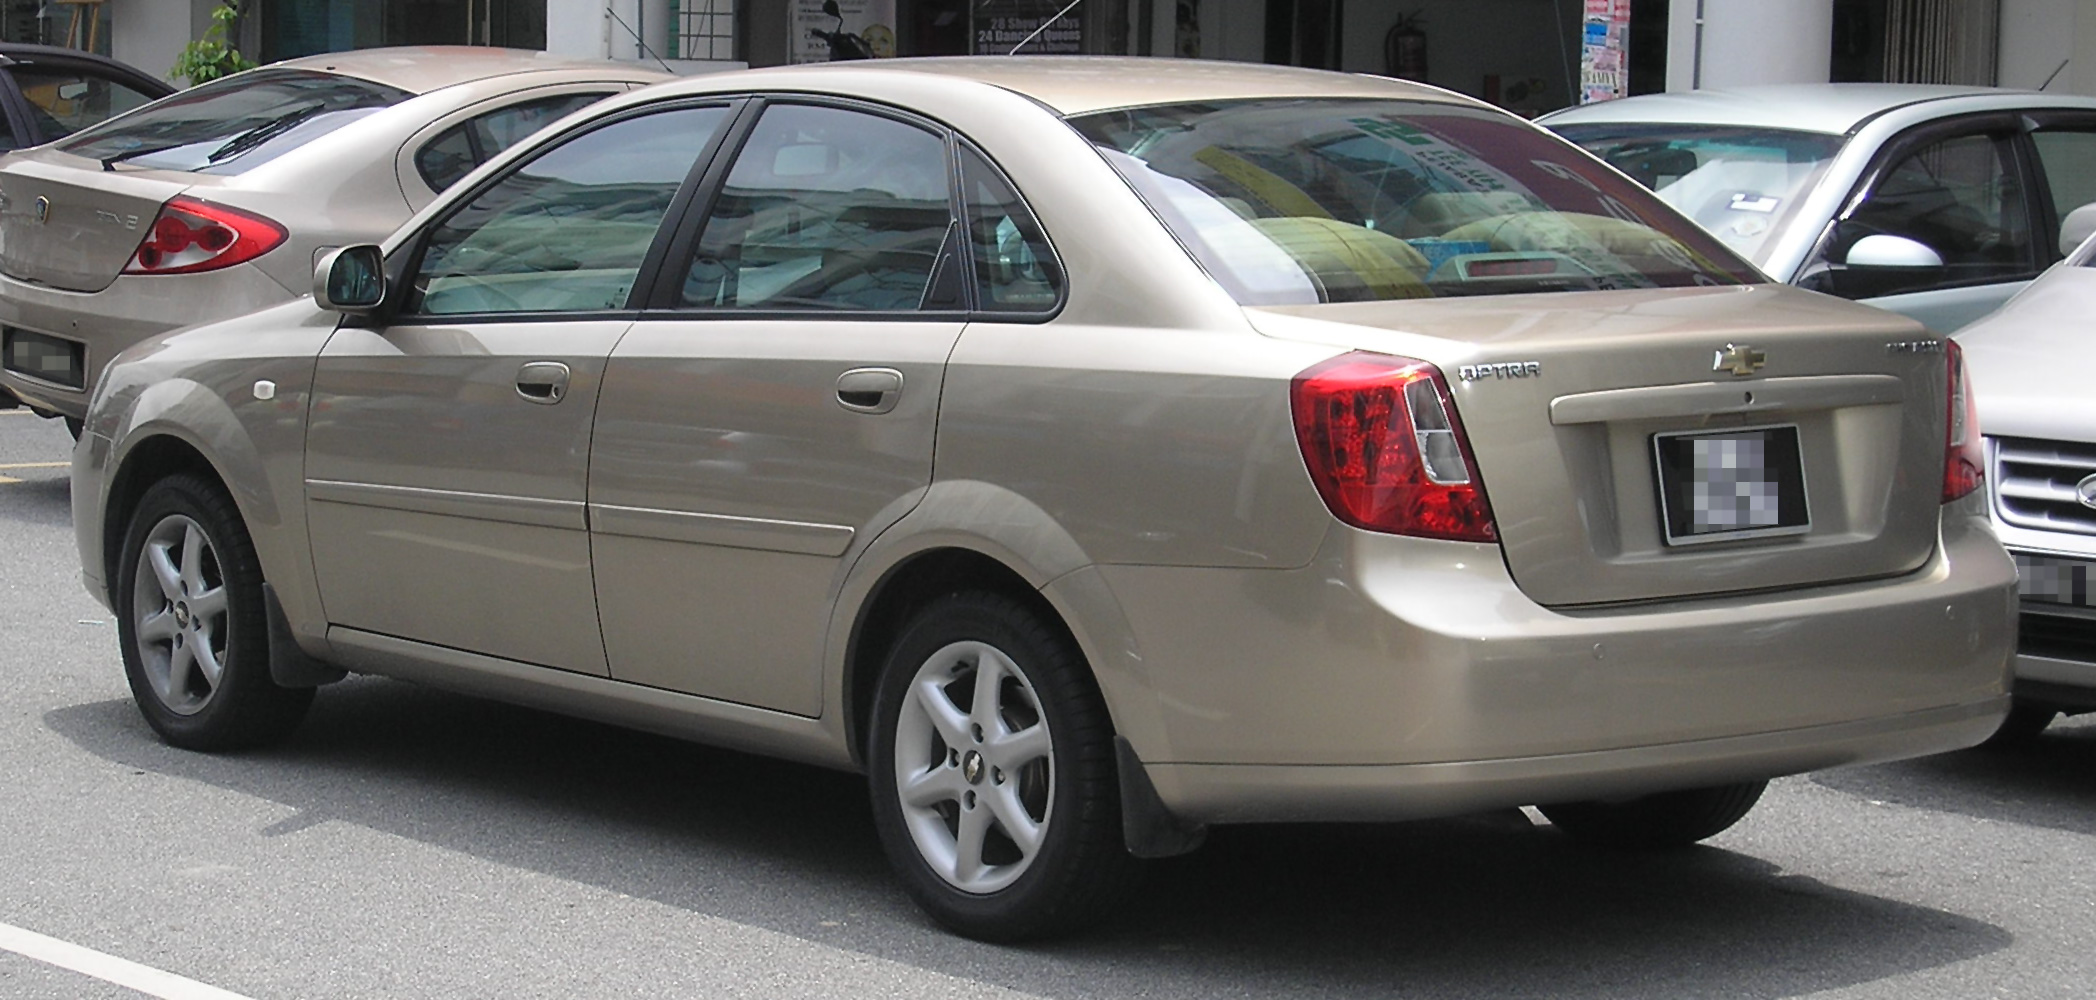 http://upload.wikimedia.org/wikipedia/commons/b/b3/Chevrolet_Optra_(first_generation)_(rear),_Serdang.jpg